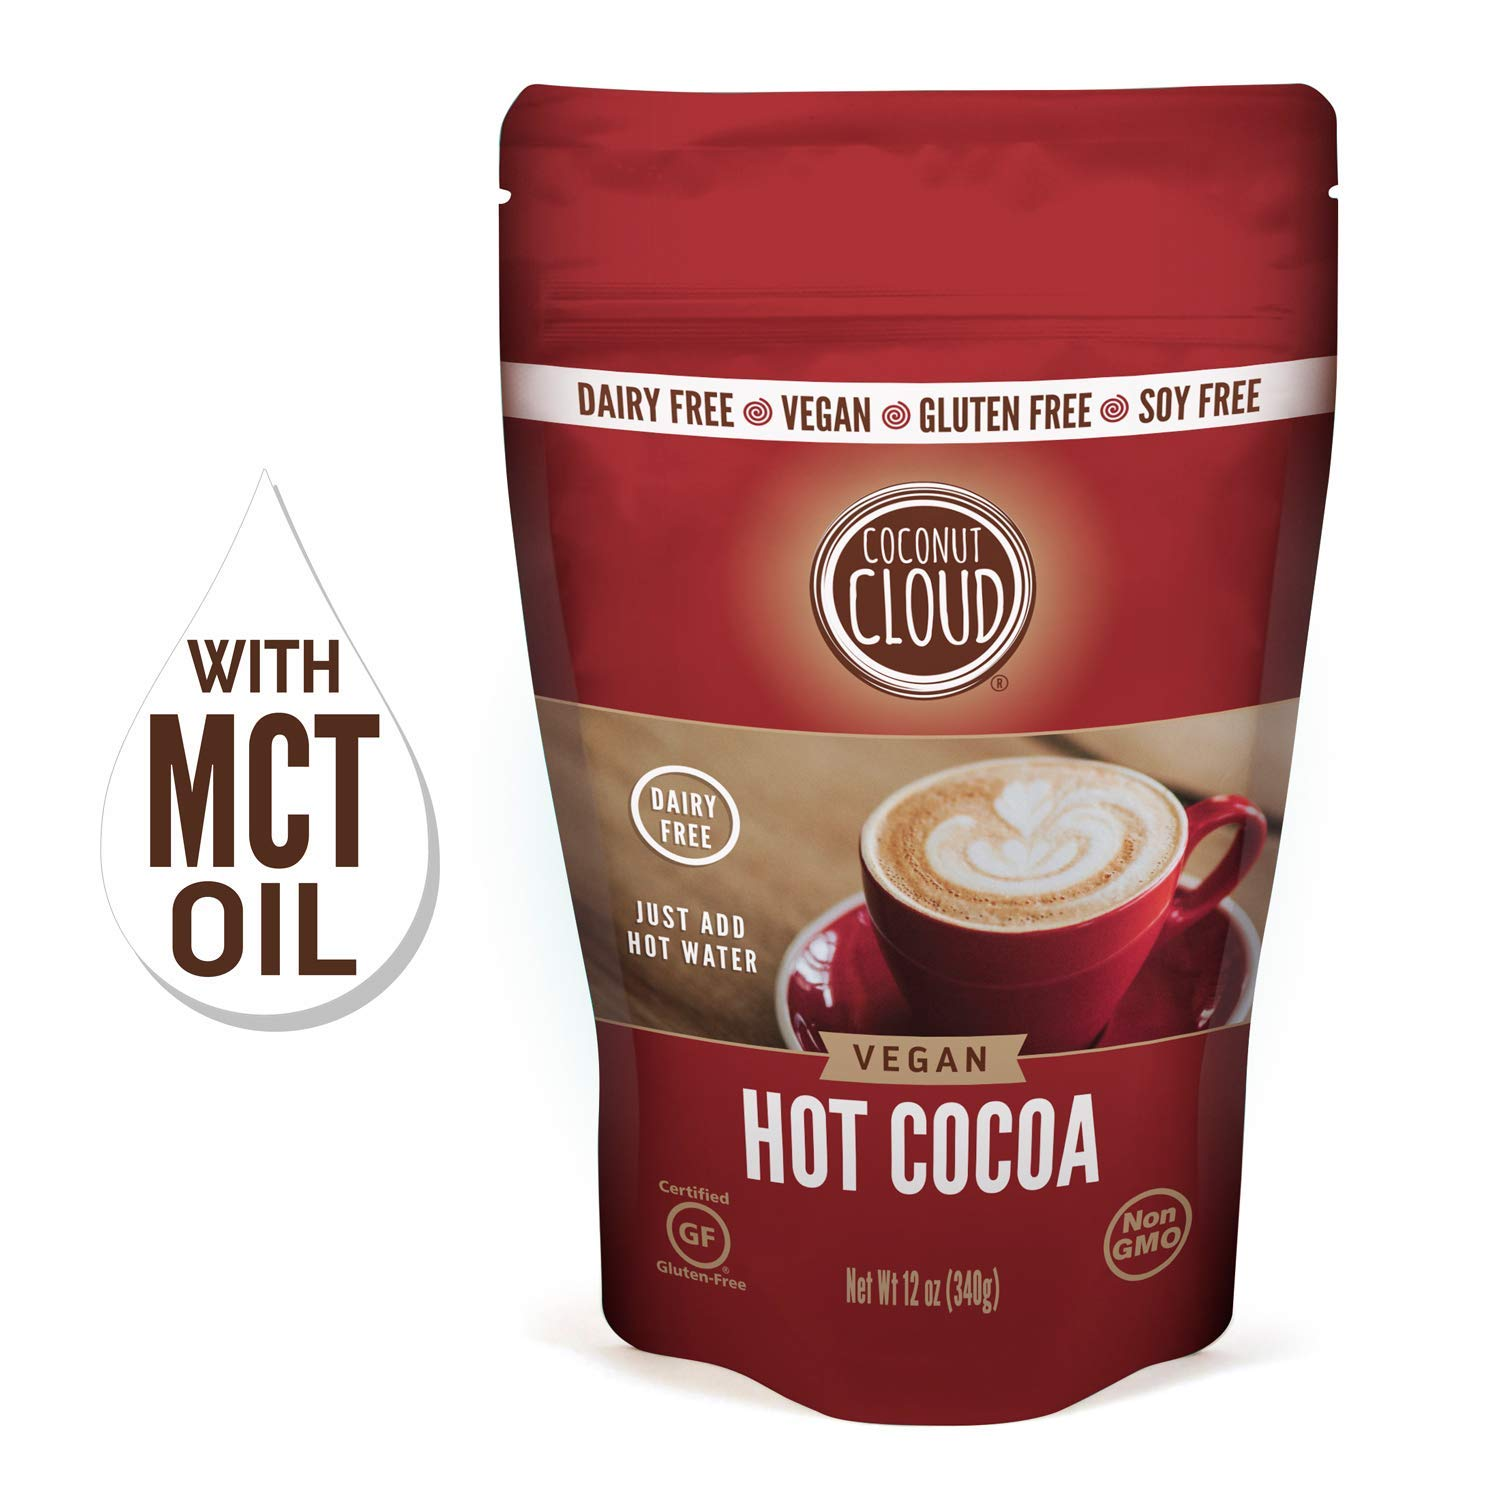 Coconut Cloud: Dairy-Free Instant Hot Cocoa Mix | Natural, Delicious, Rich, Creamy Chocolate | Women Owned, Made in Colorado from Premium Coconut Milk Powder (Vegan, Non-GMO, Gluten Free) 21 Servings by Coconut Cloud